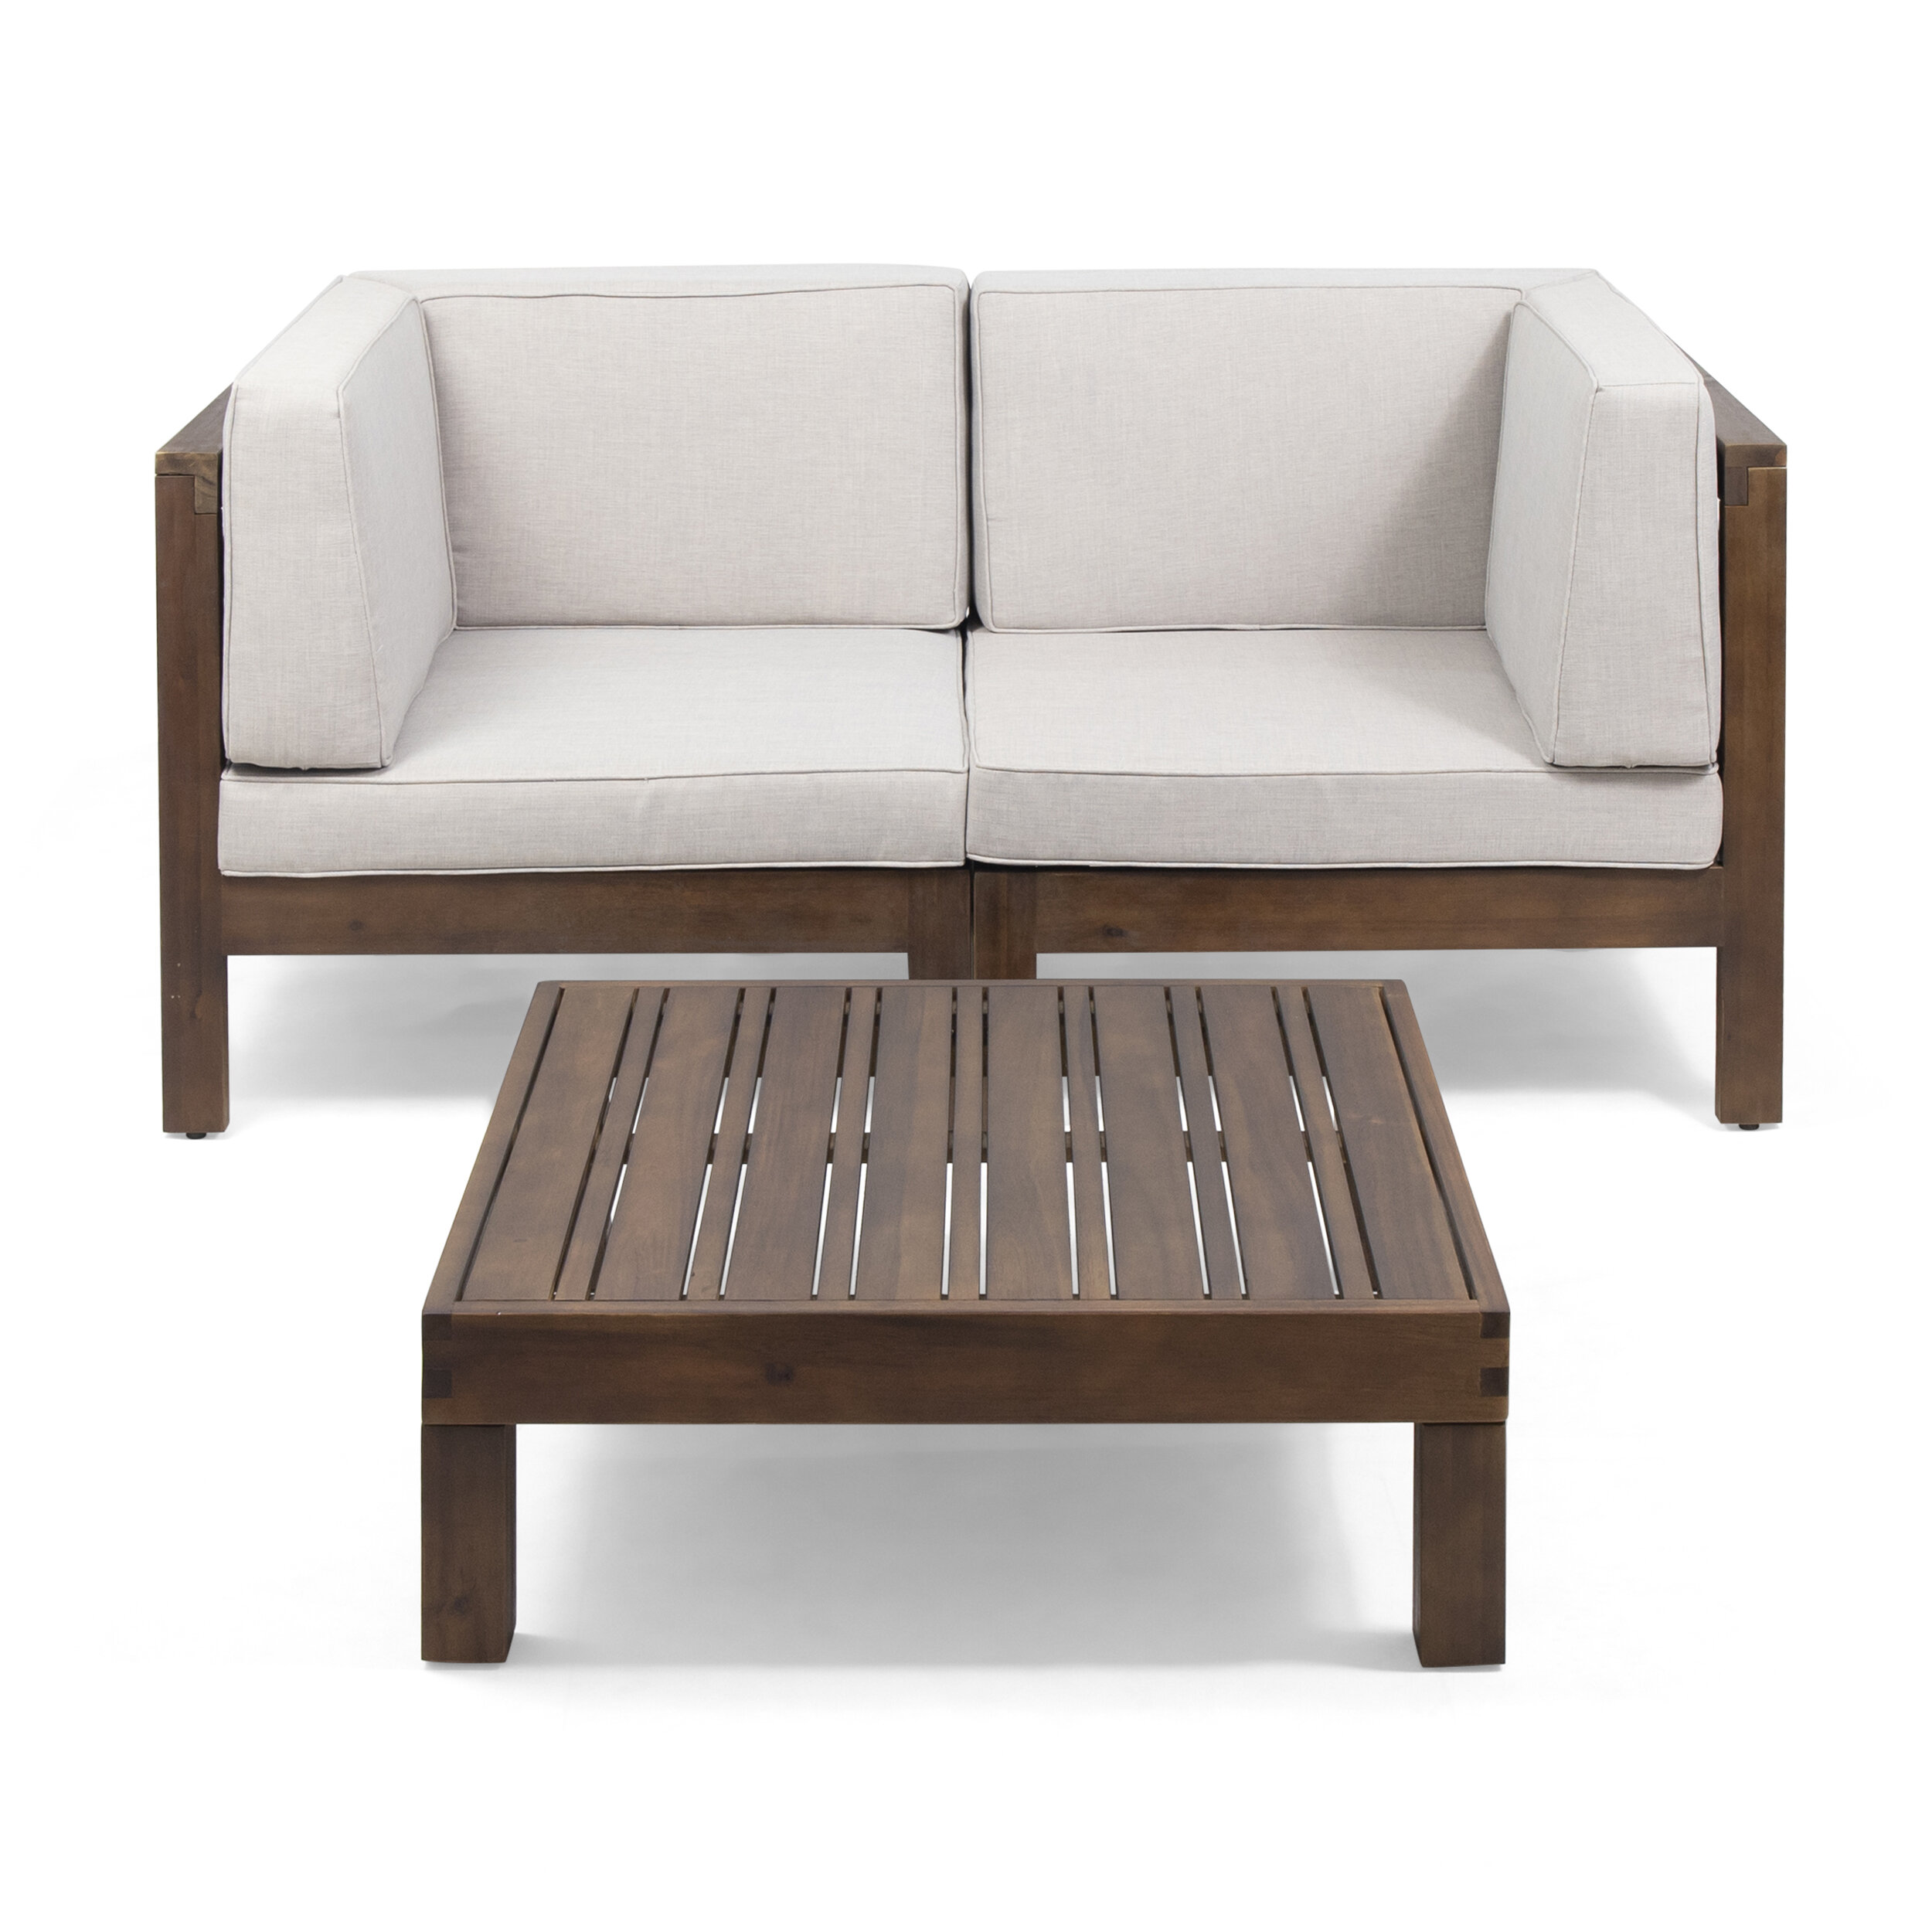 Patel Outdoor Modular 3 Piece Sofa Seating Group with Cushions